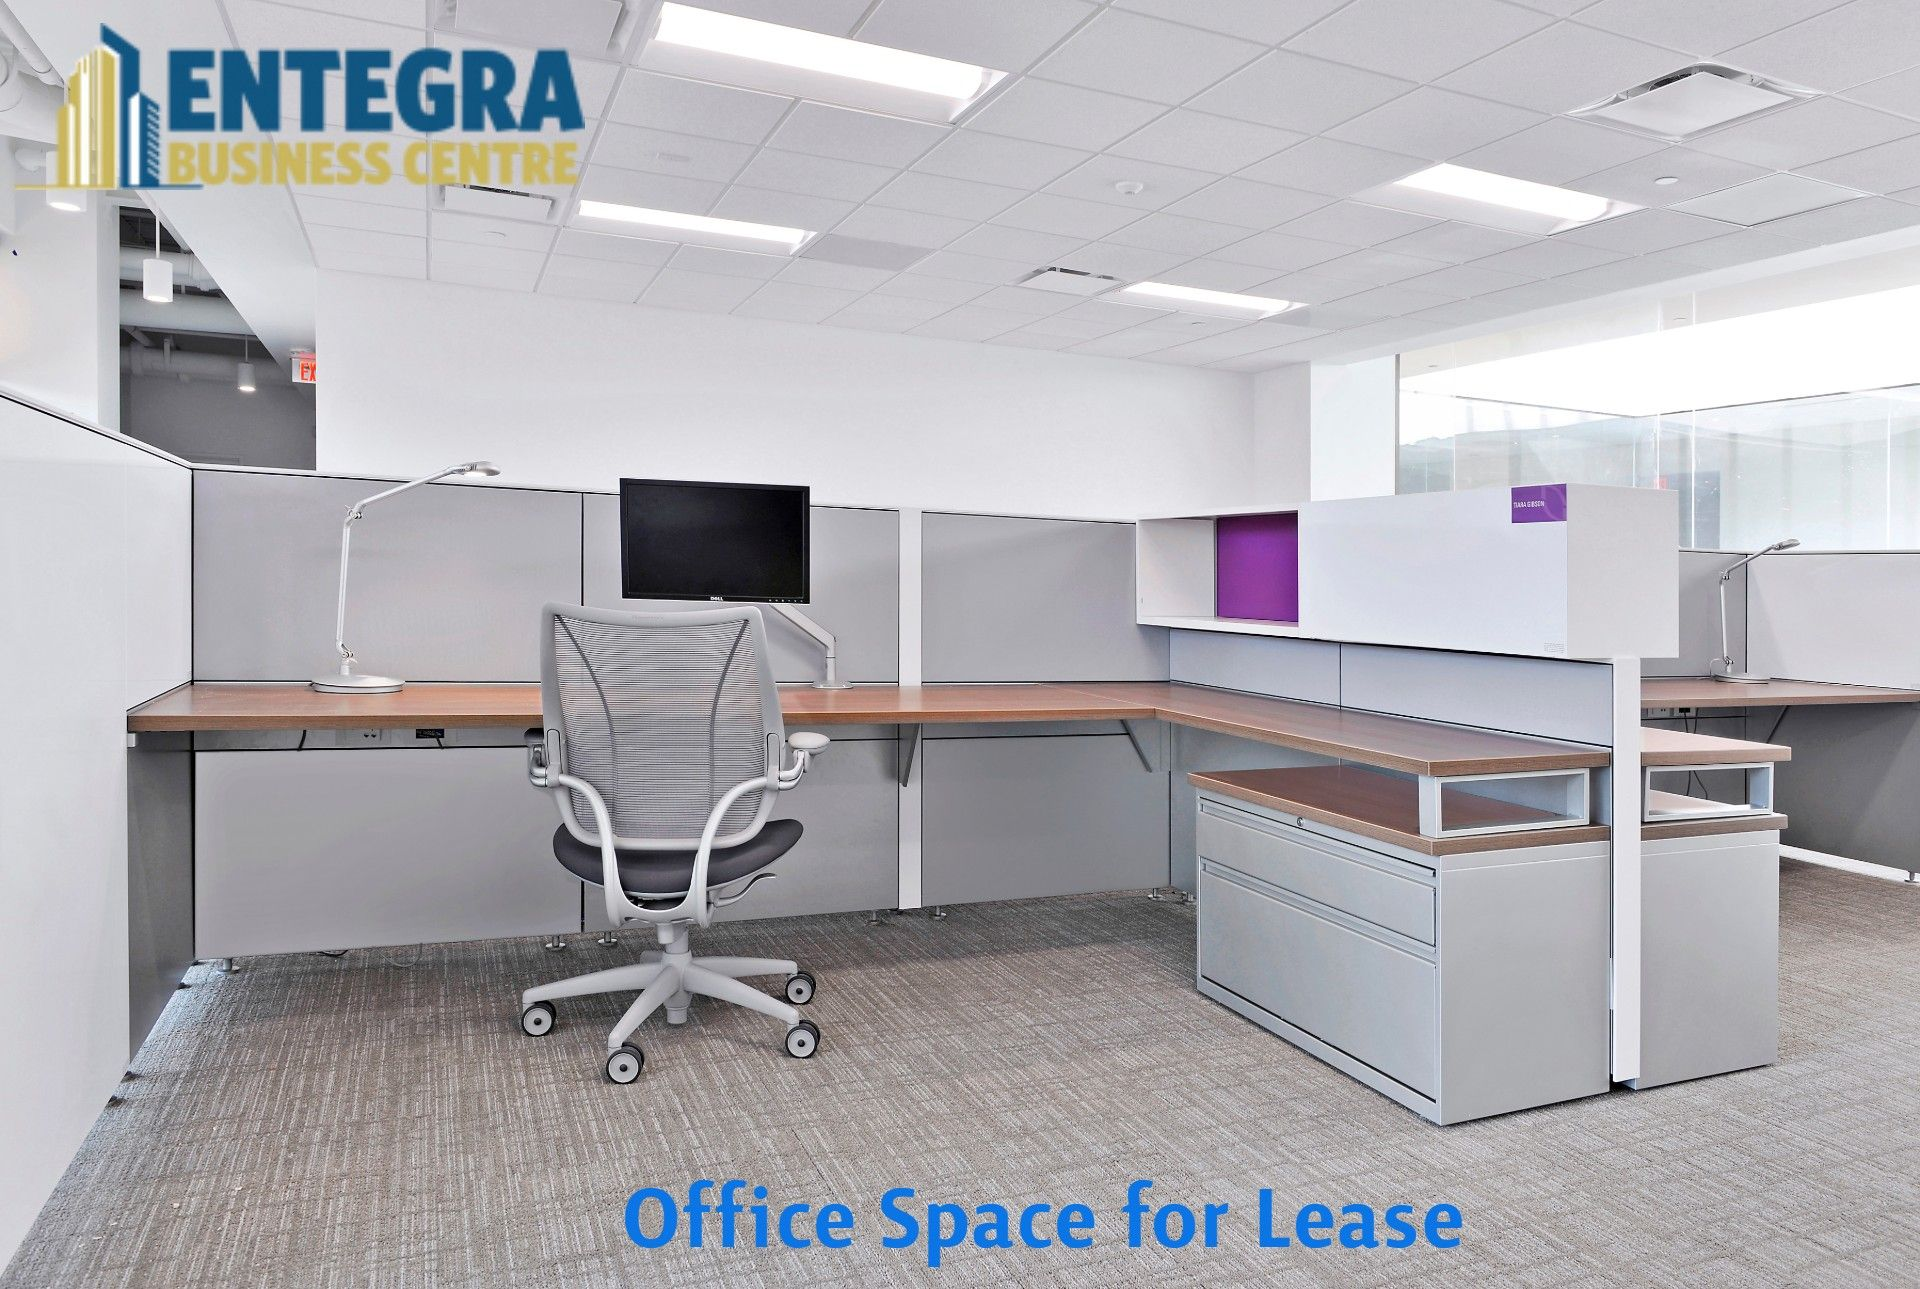 Find The Best Shared Furnished Office Space For Lease Office Interiors Office Space Office Rental